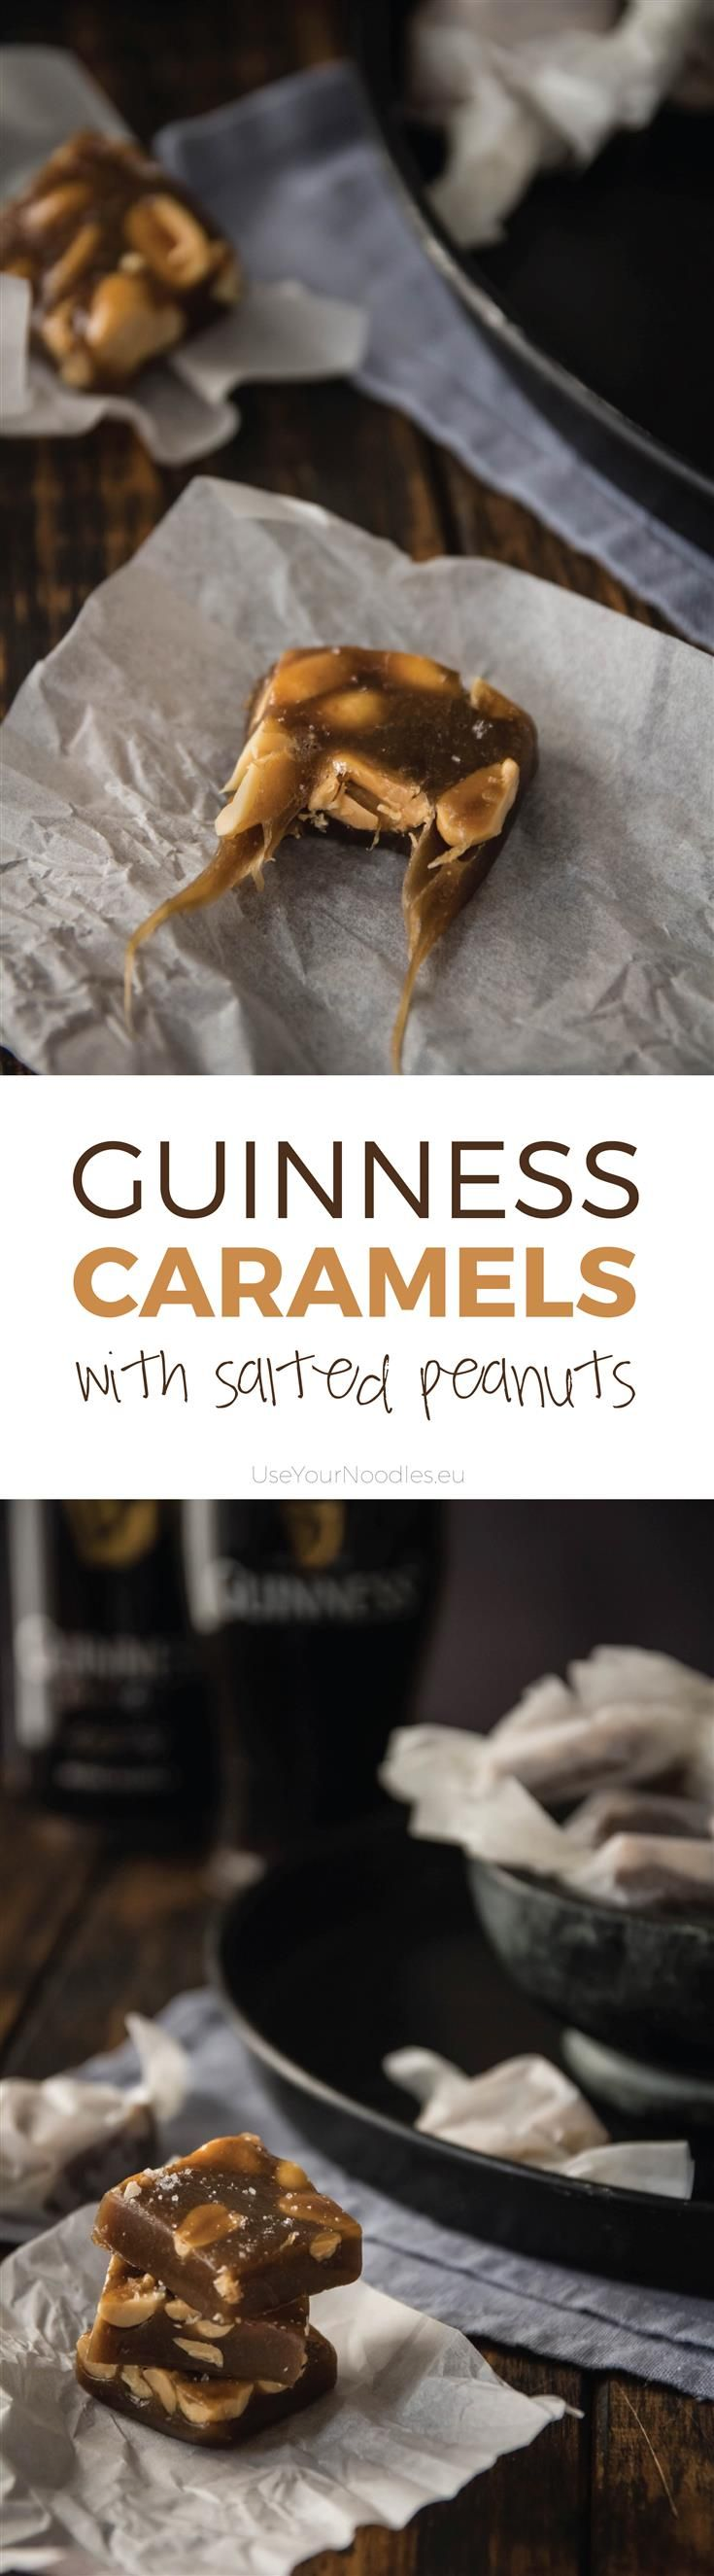 St Patrick's day is coming closer and we're making yummy gooey Guinness caramels with salted peanuts. If you don't know what to snack on while drinking beer - sweet or salty - you can have have both!